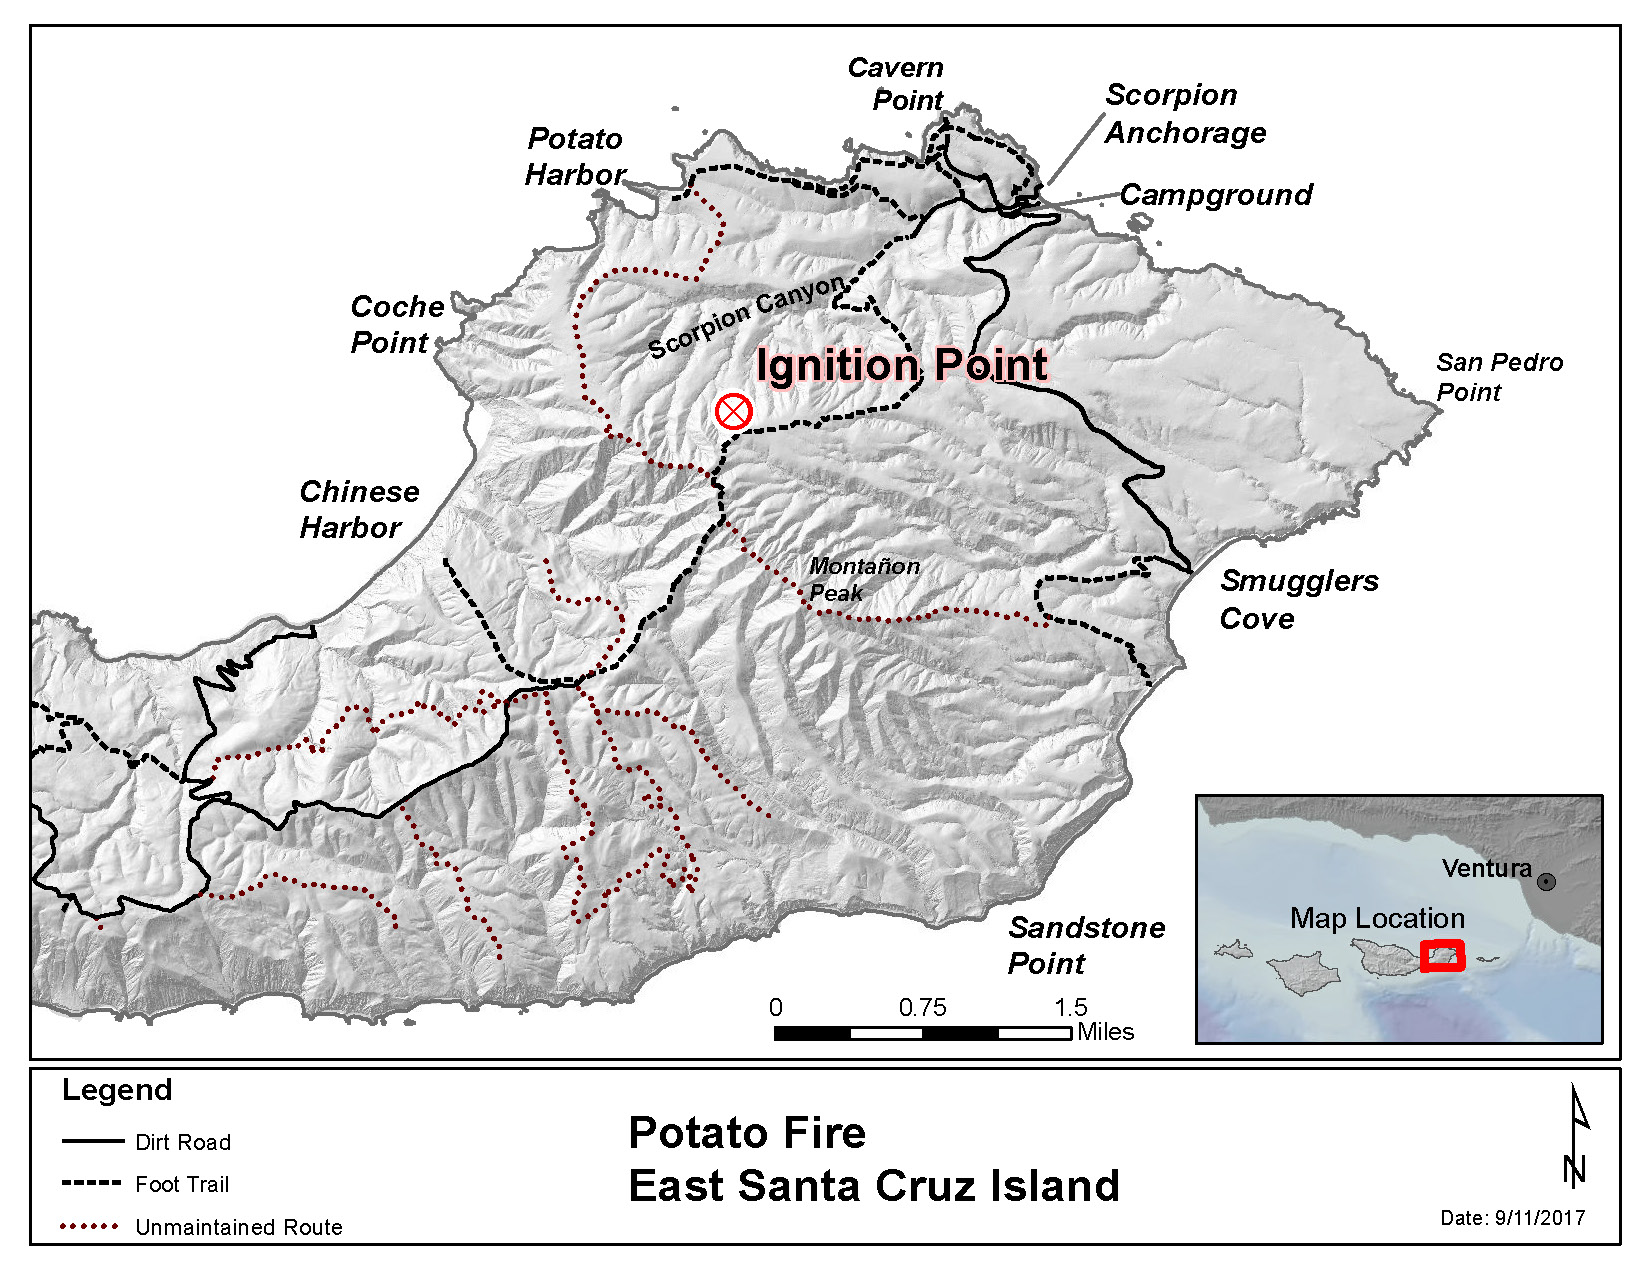 Map of eastern santa cruz island showing roads and trails and ignition point of fire.